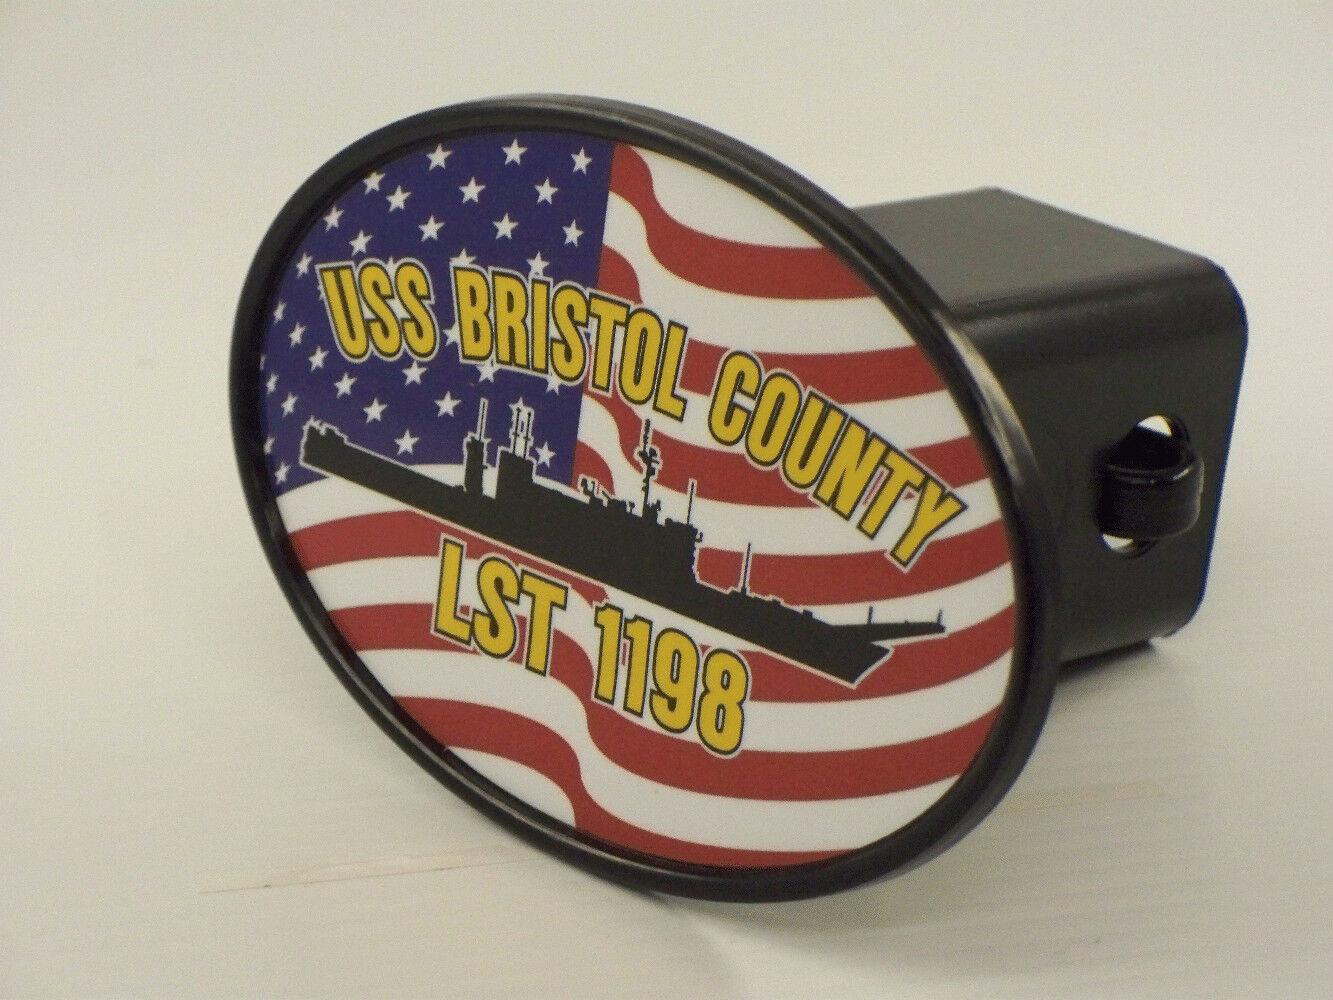 USS BARNSTABLE COUNTY LST 1197 Decal US NAVY Military S01